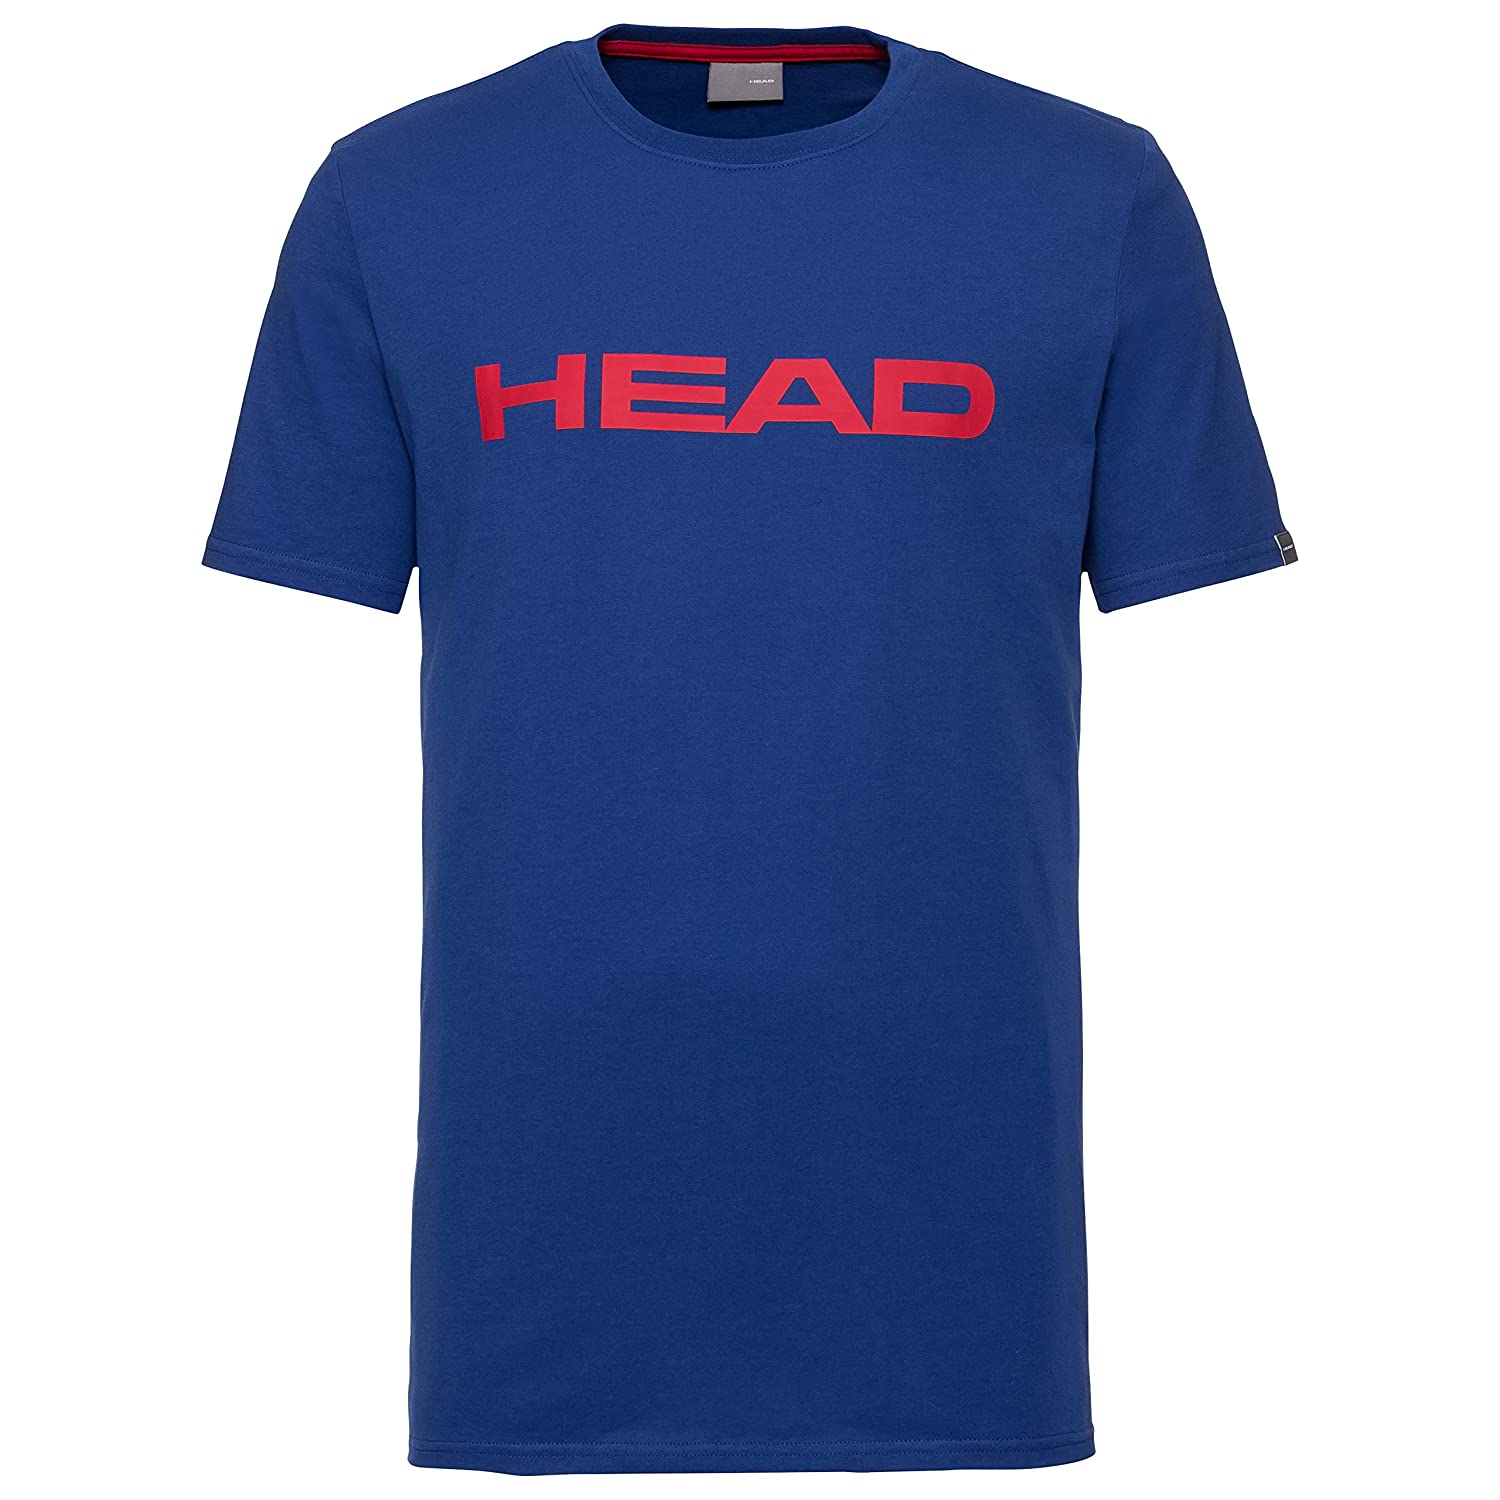 Head Club Ivan JNR Camiseta Royal Blue//Red Infantil Medium